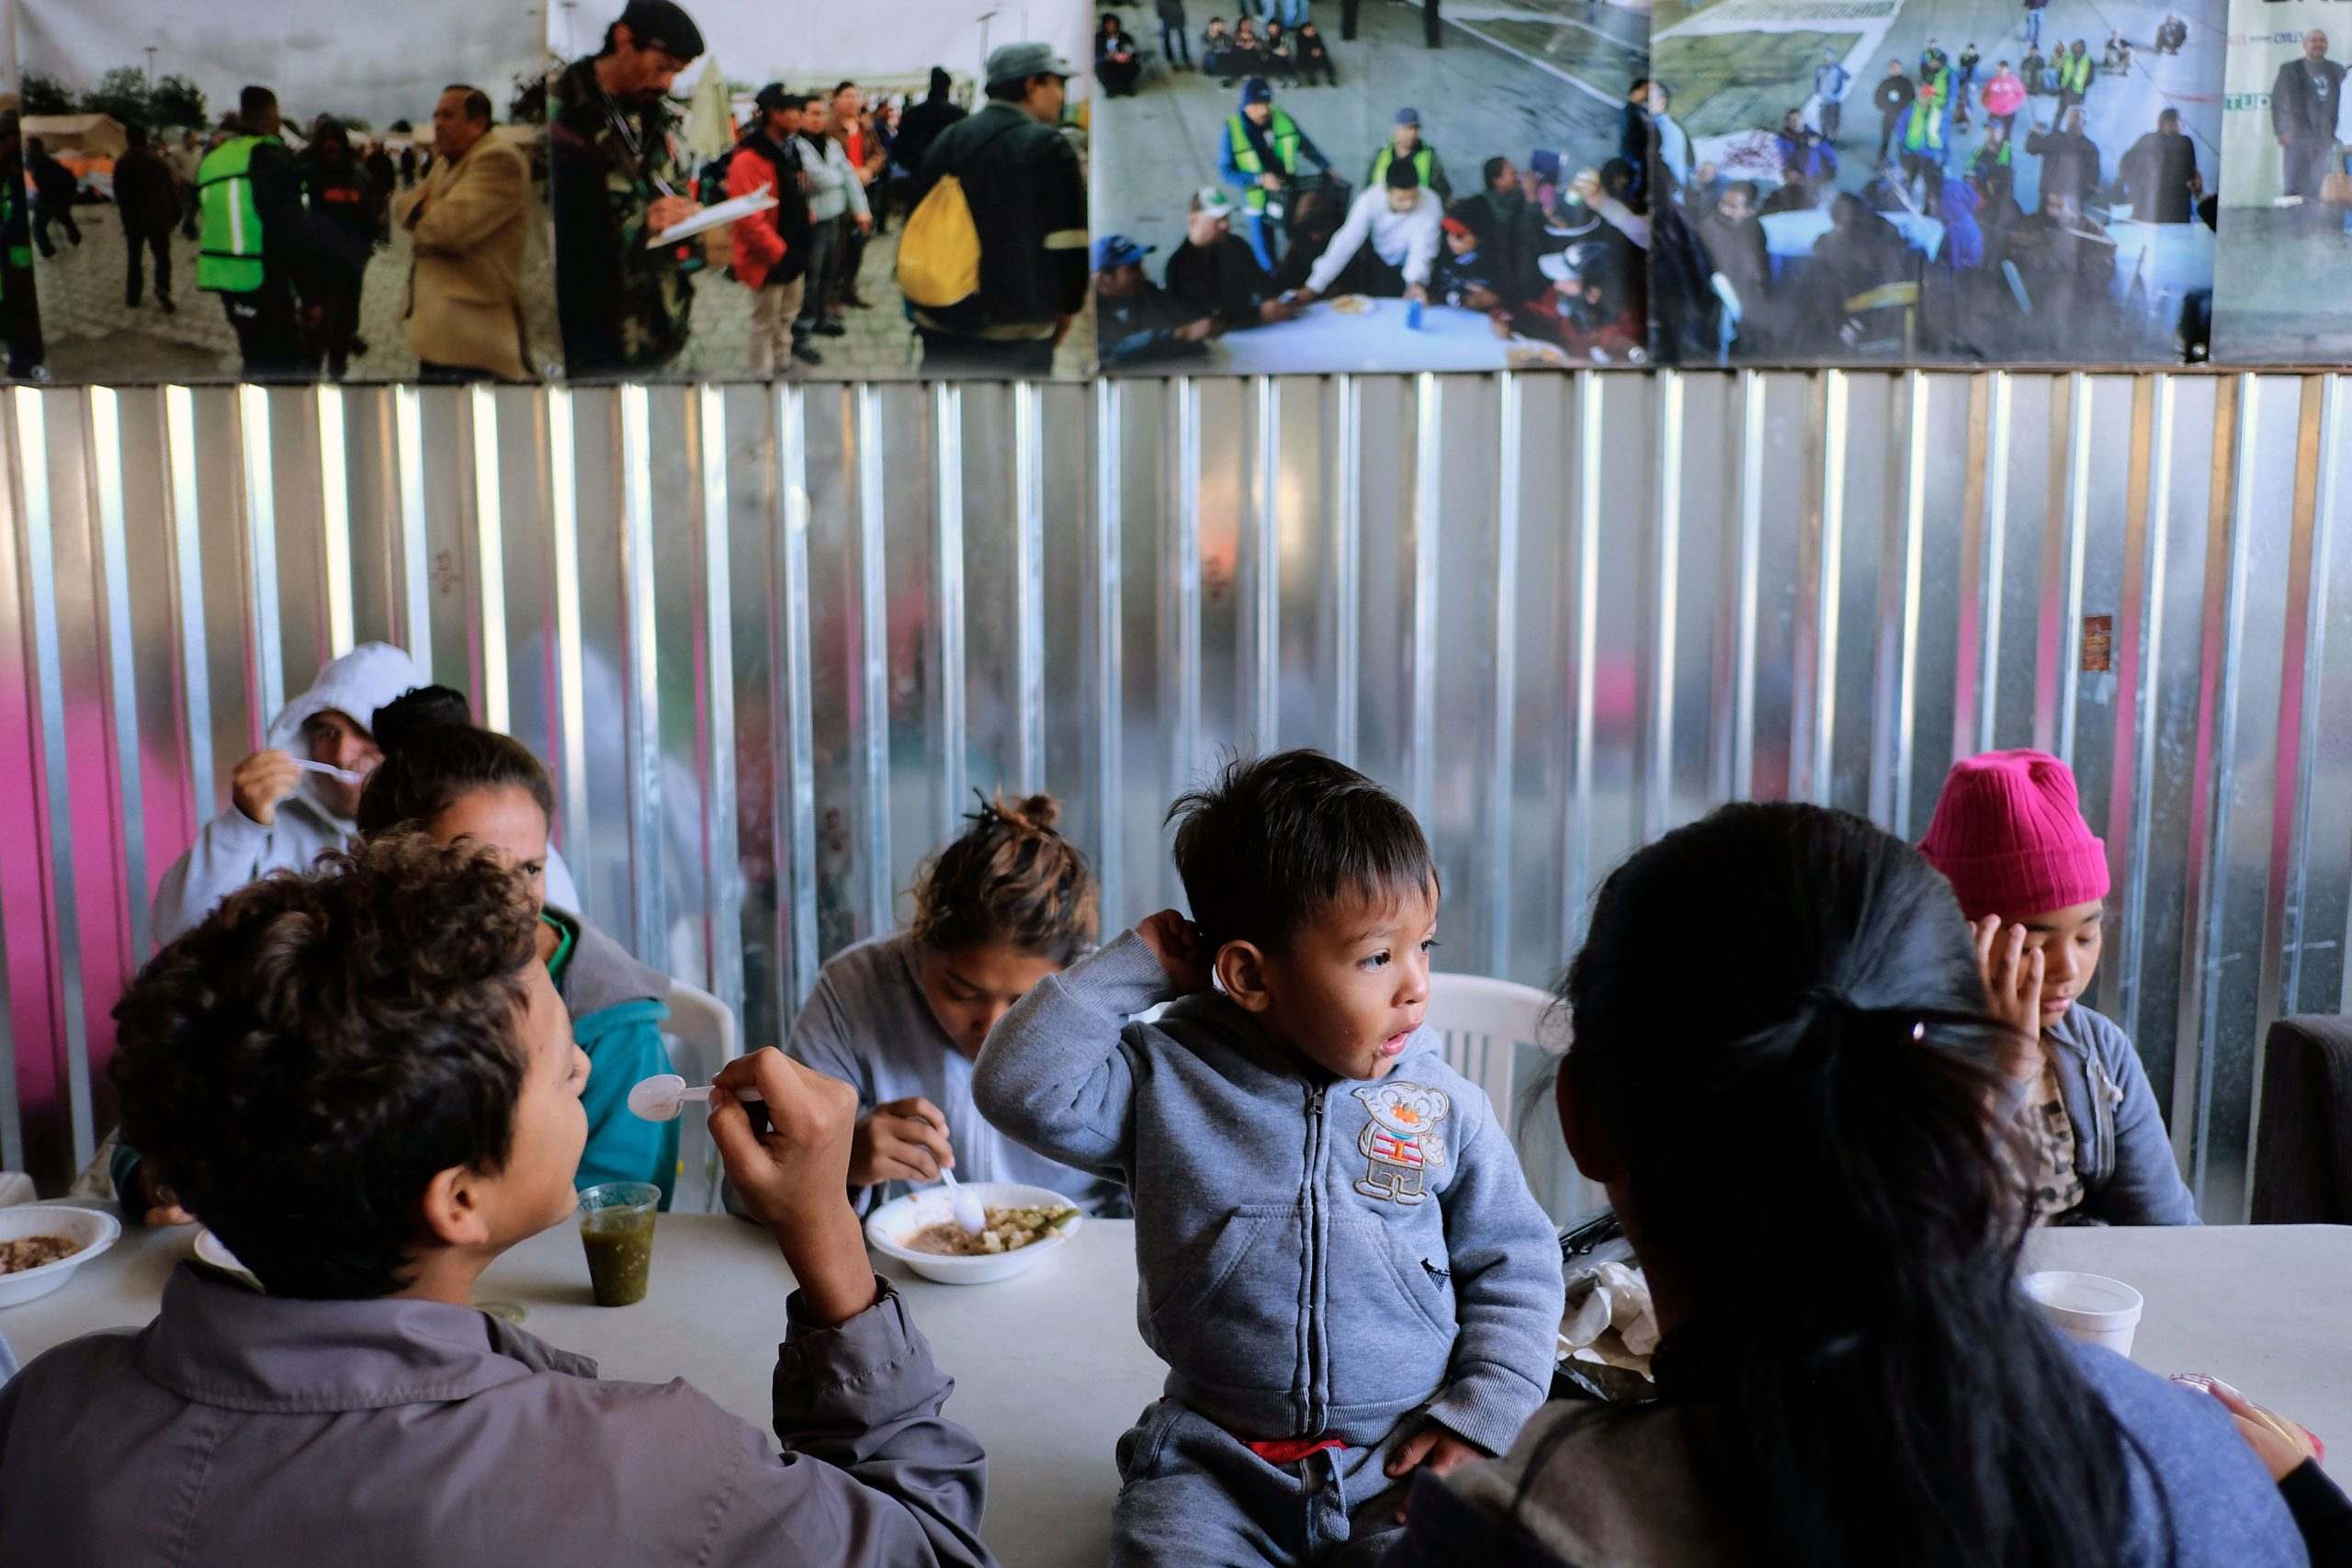 Christian (C) sits next to his mother (R) and other Central American migrants during the